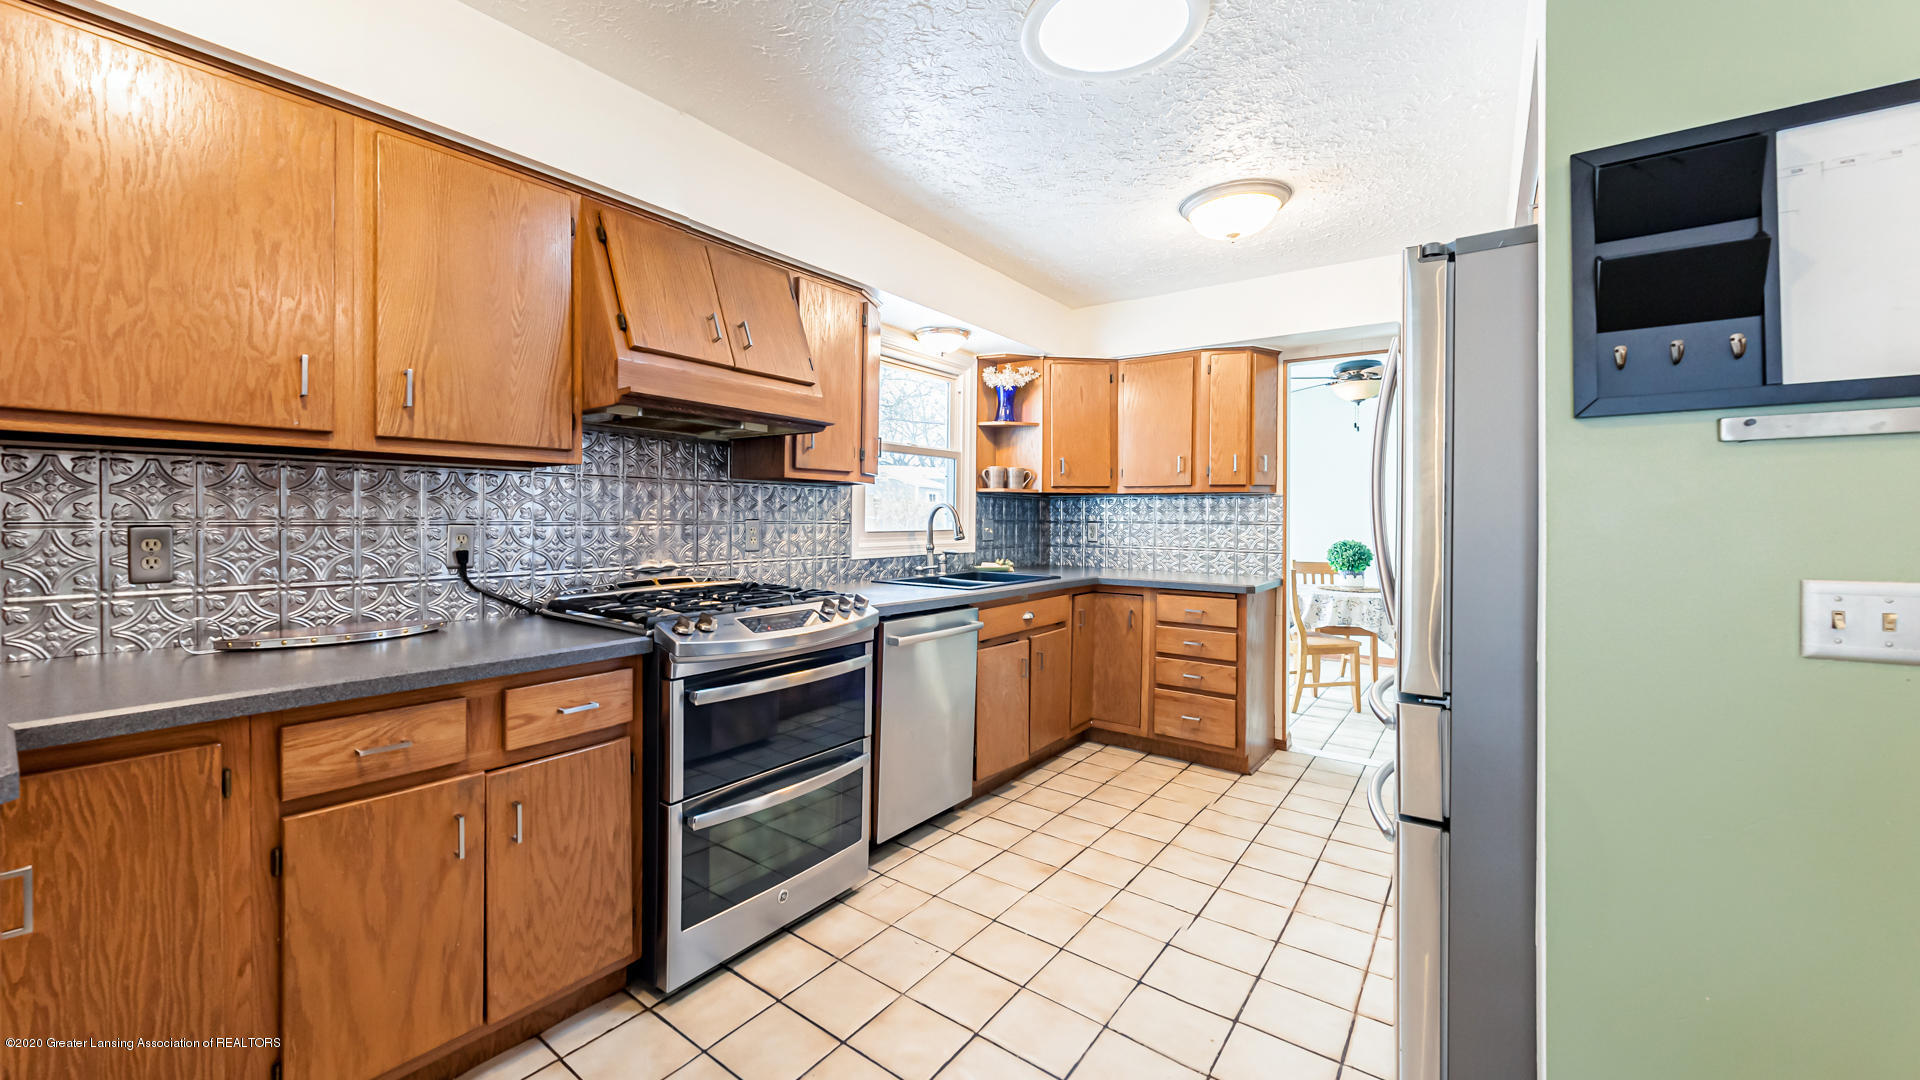 1102 Fairway Ln - Kitchen - 9